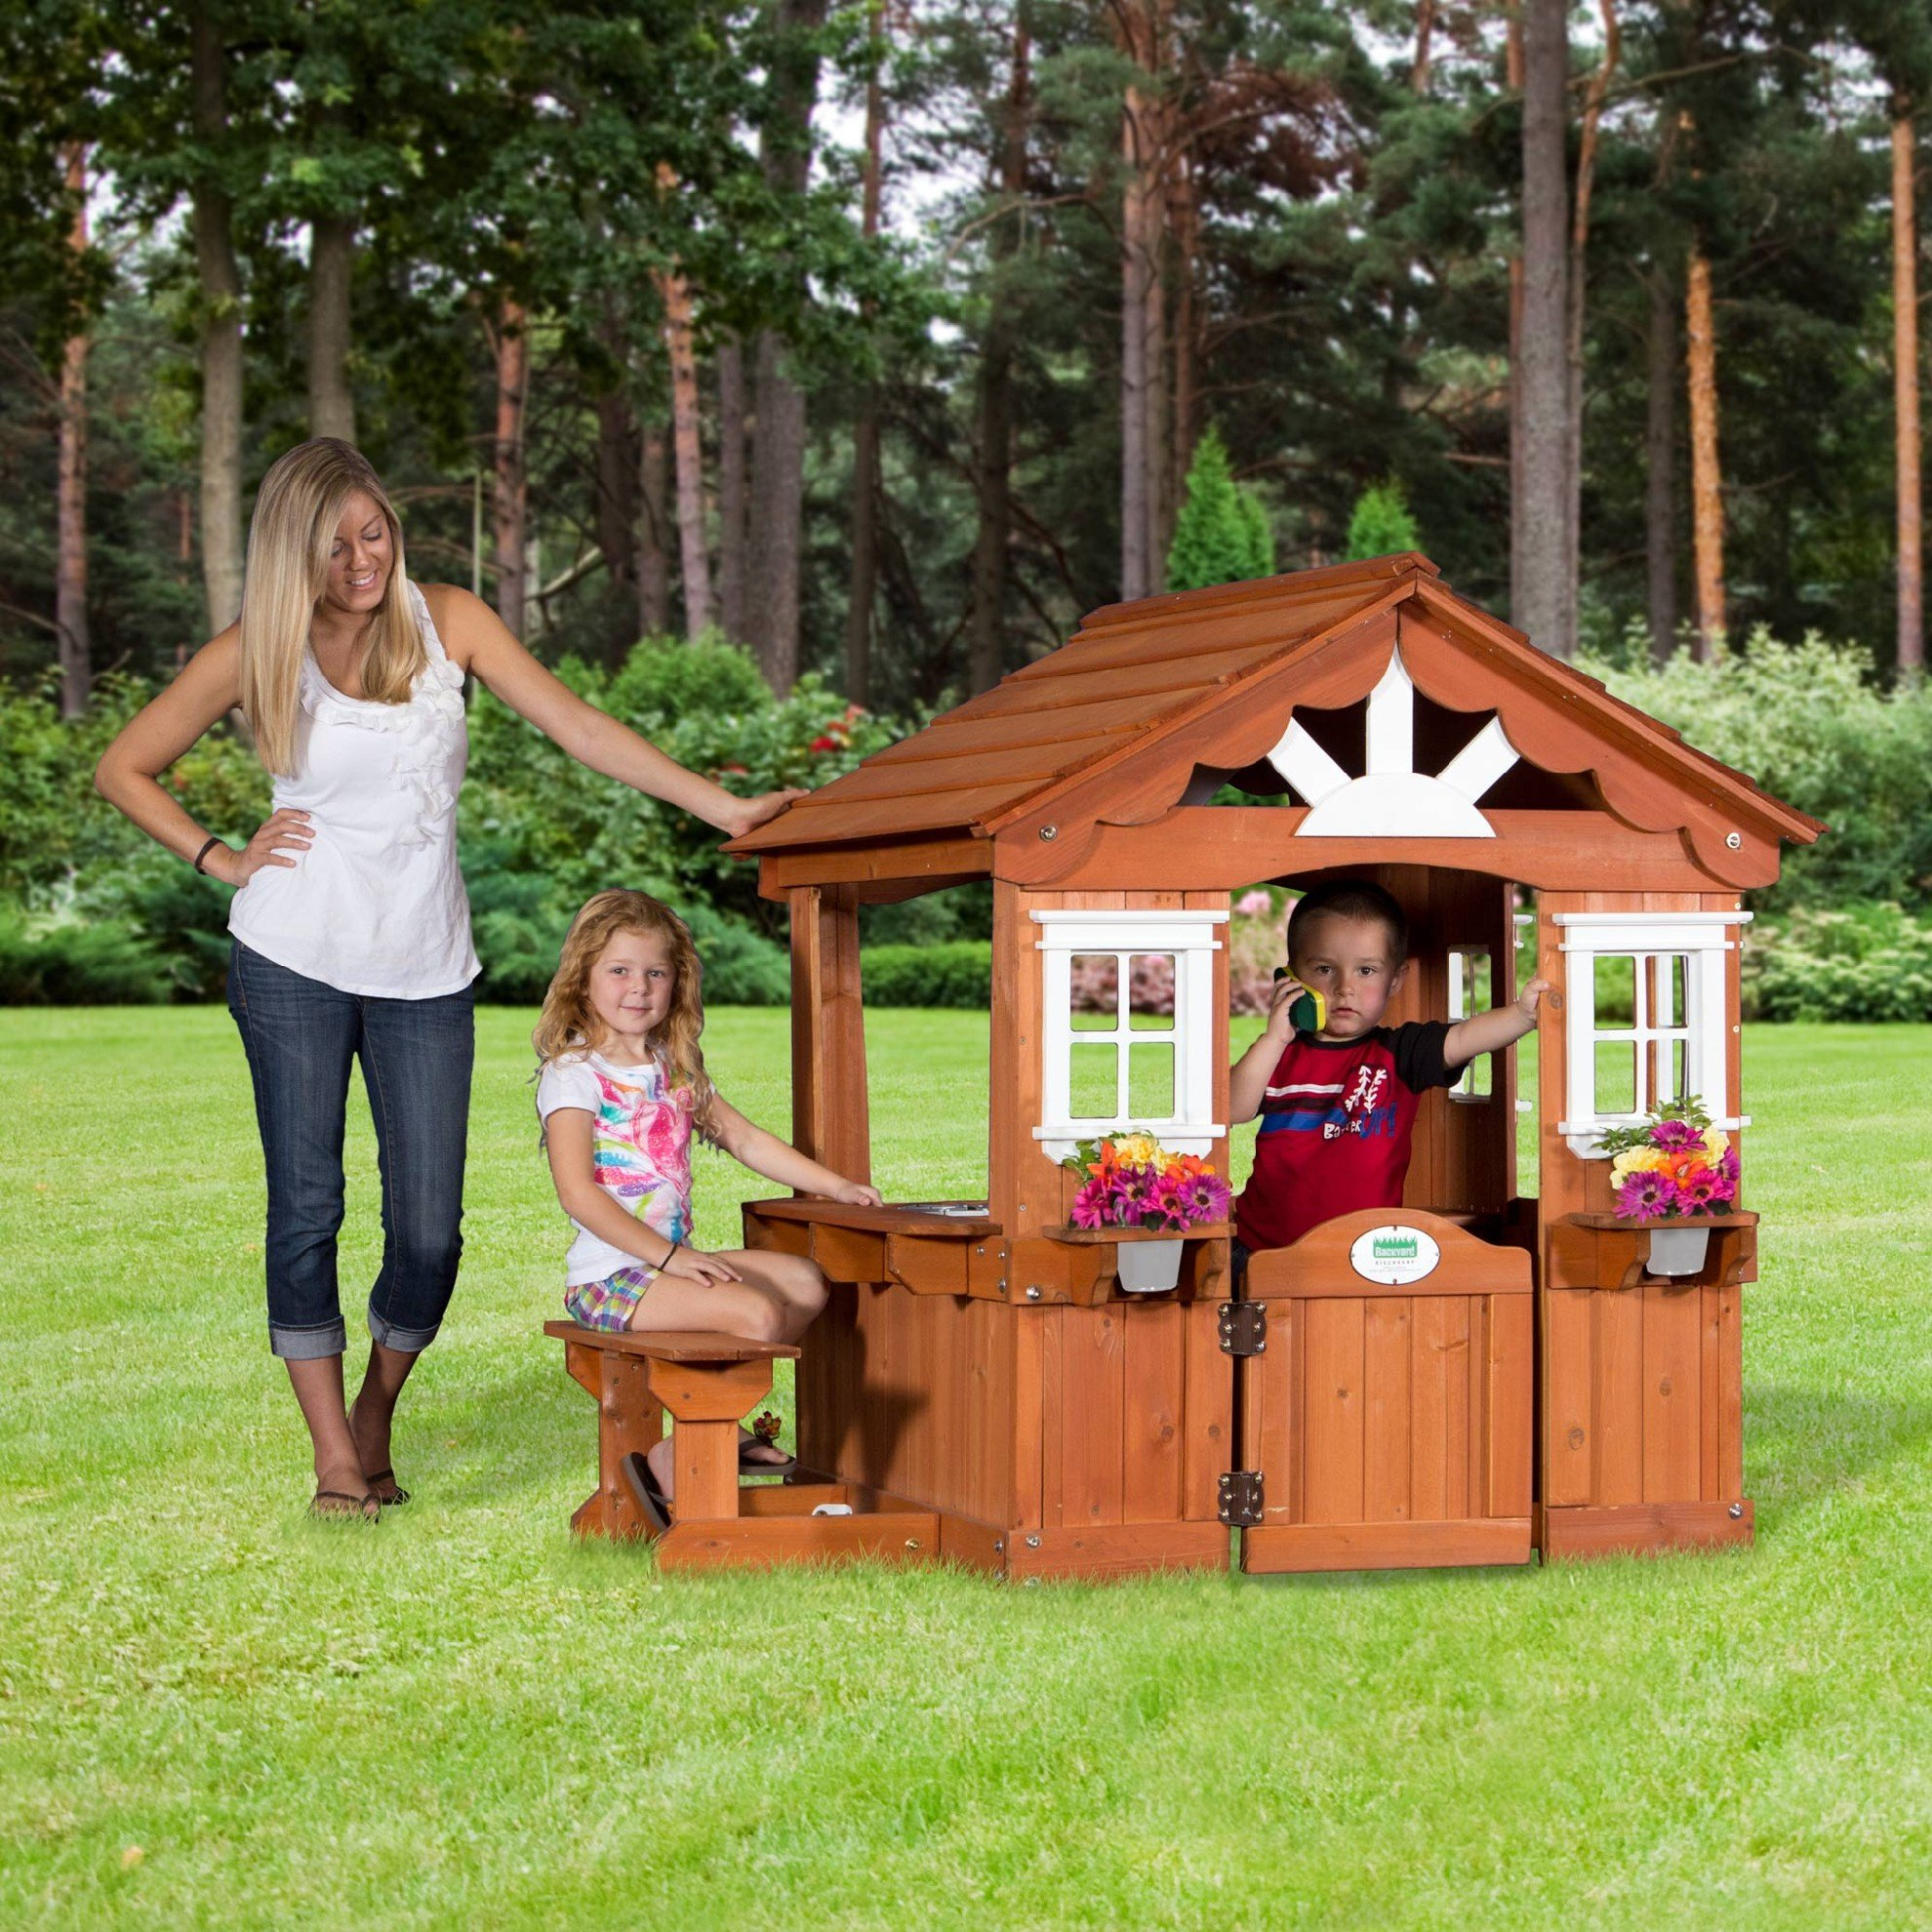 Backyard Discovery Scenic All Cedar Outdoor Wooden Playhouse by Backyard Discovery (Image #4)